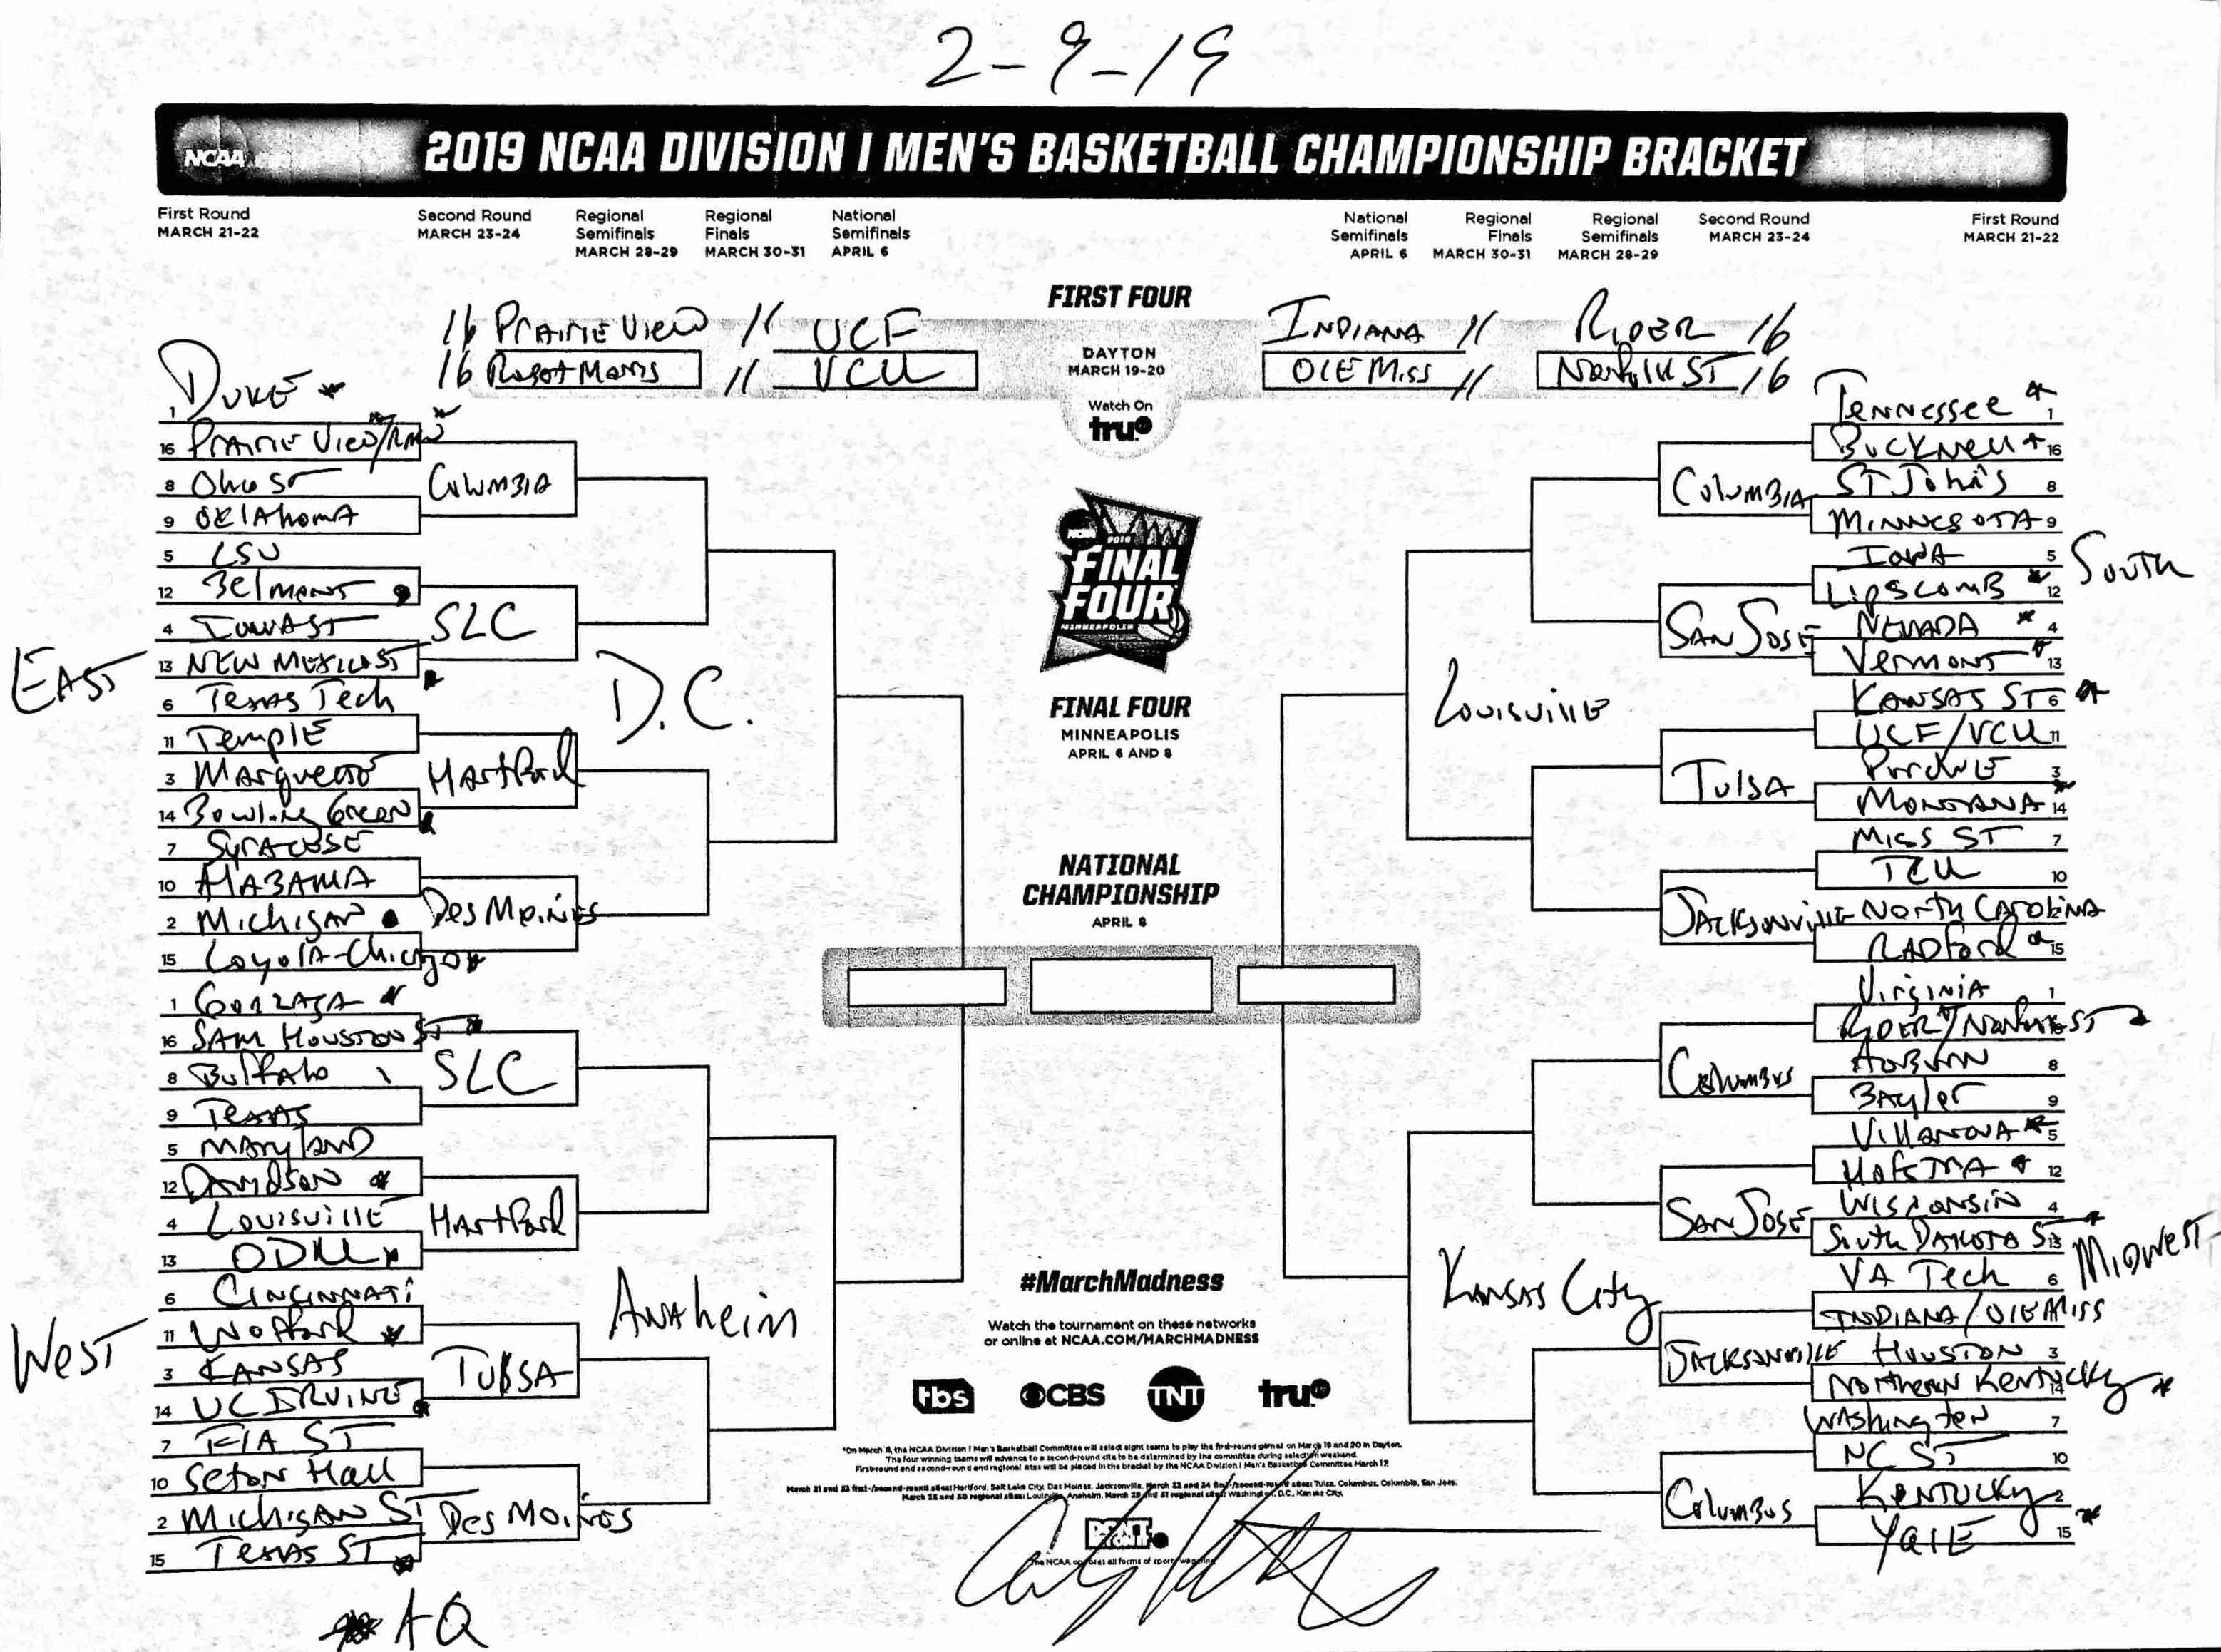 Asa Houston Calendar February 2019 The complete March Madness field of 68 predicted after the Top 16